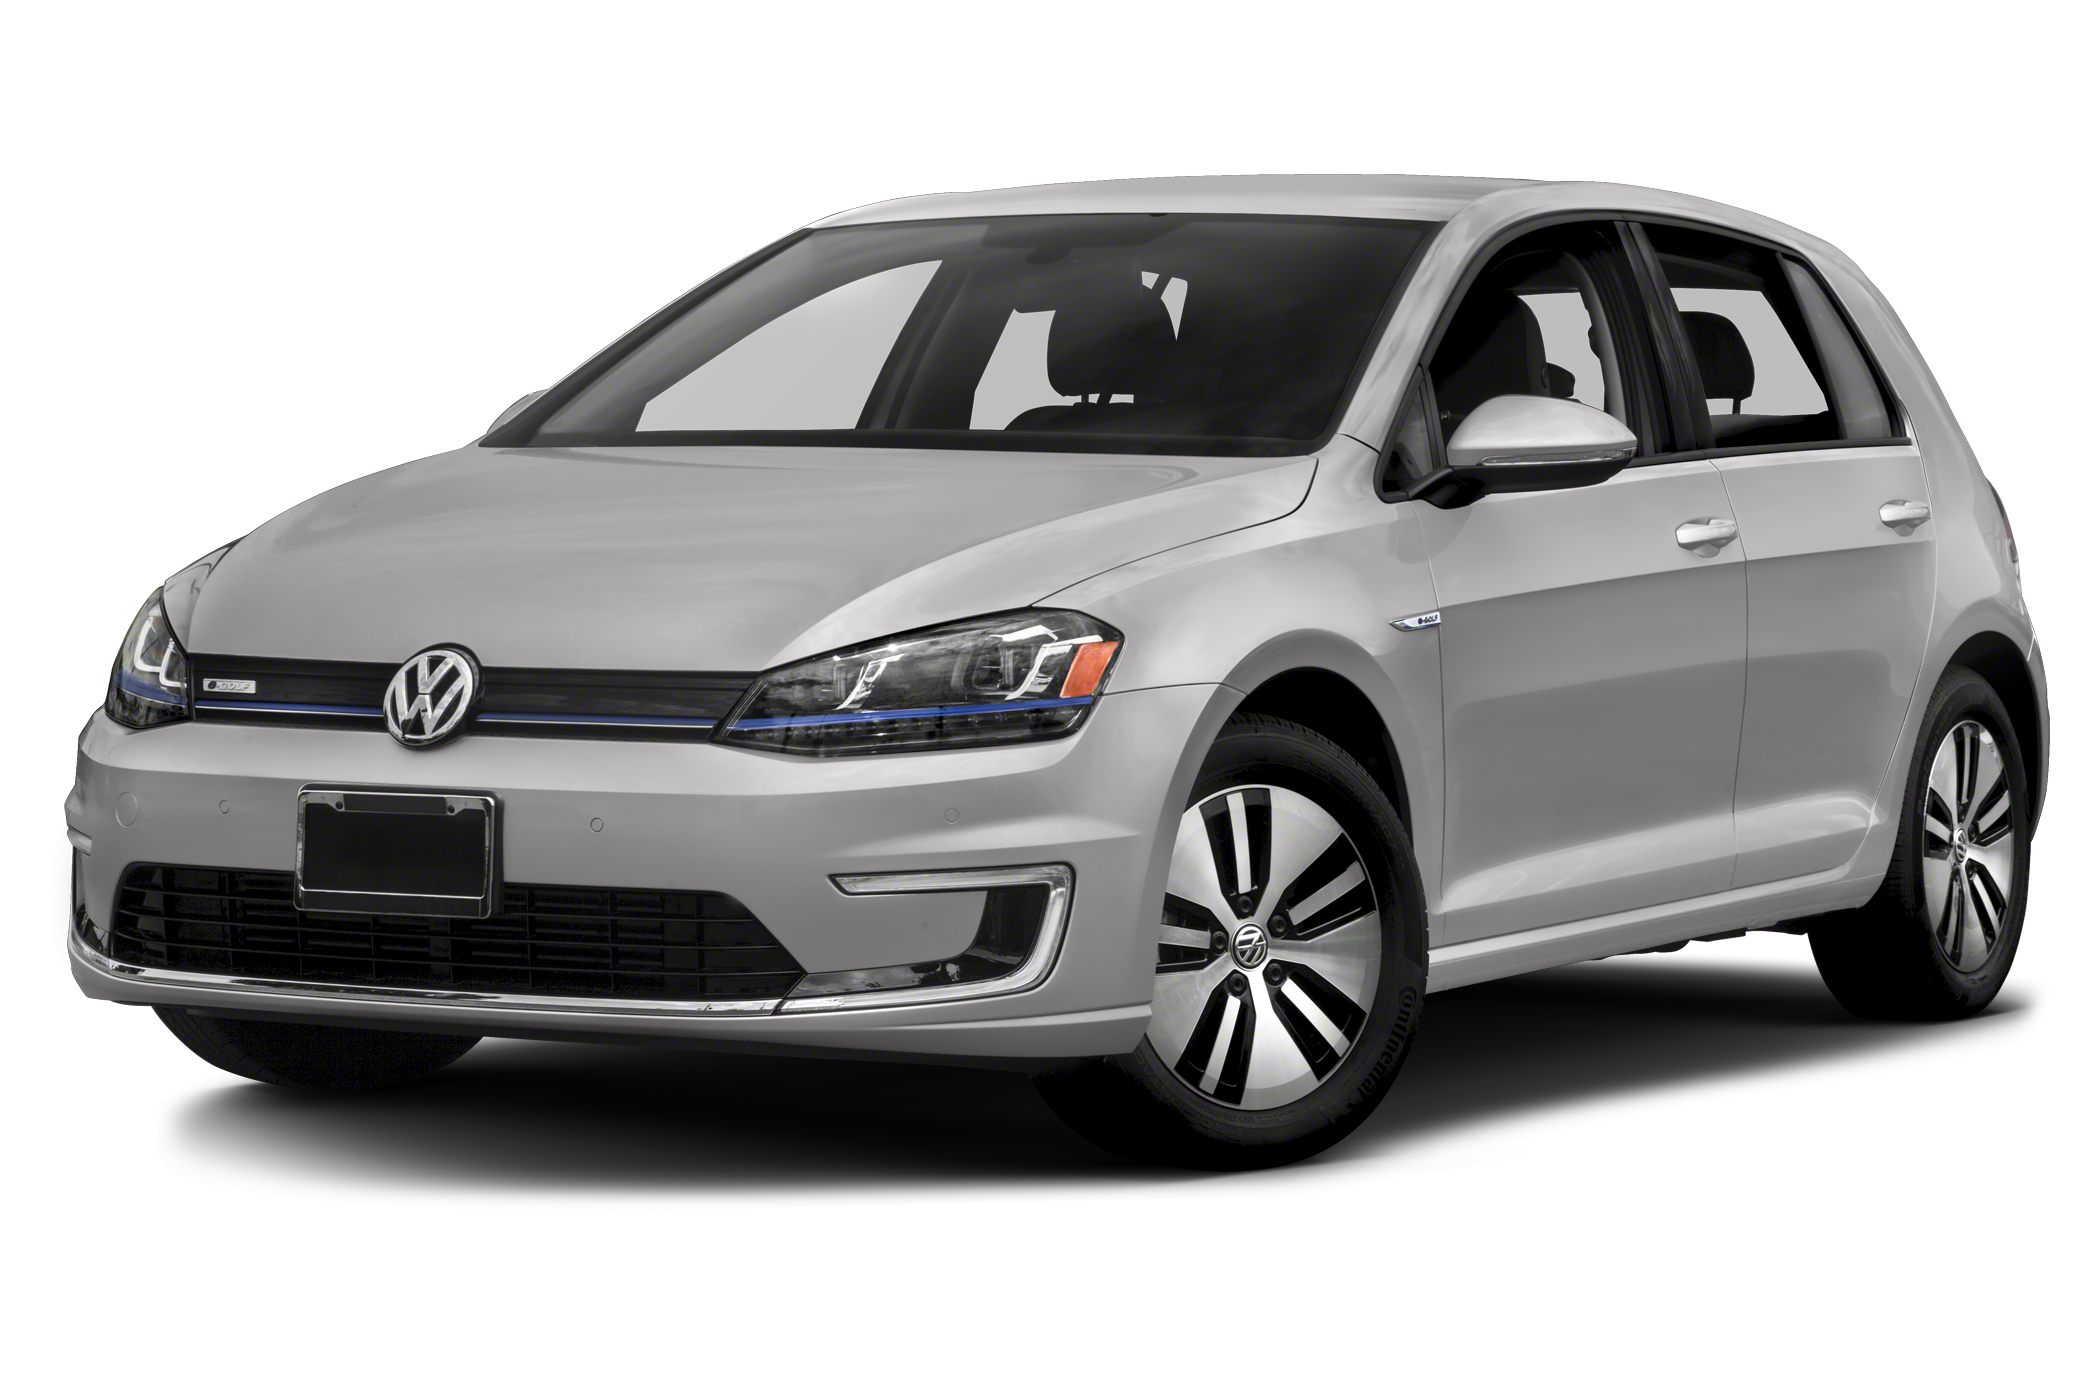 2015 Volkswagen e-Golf